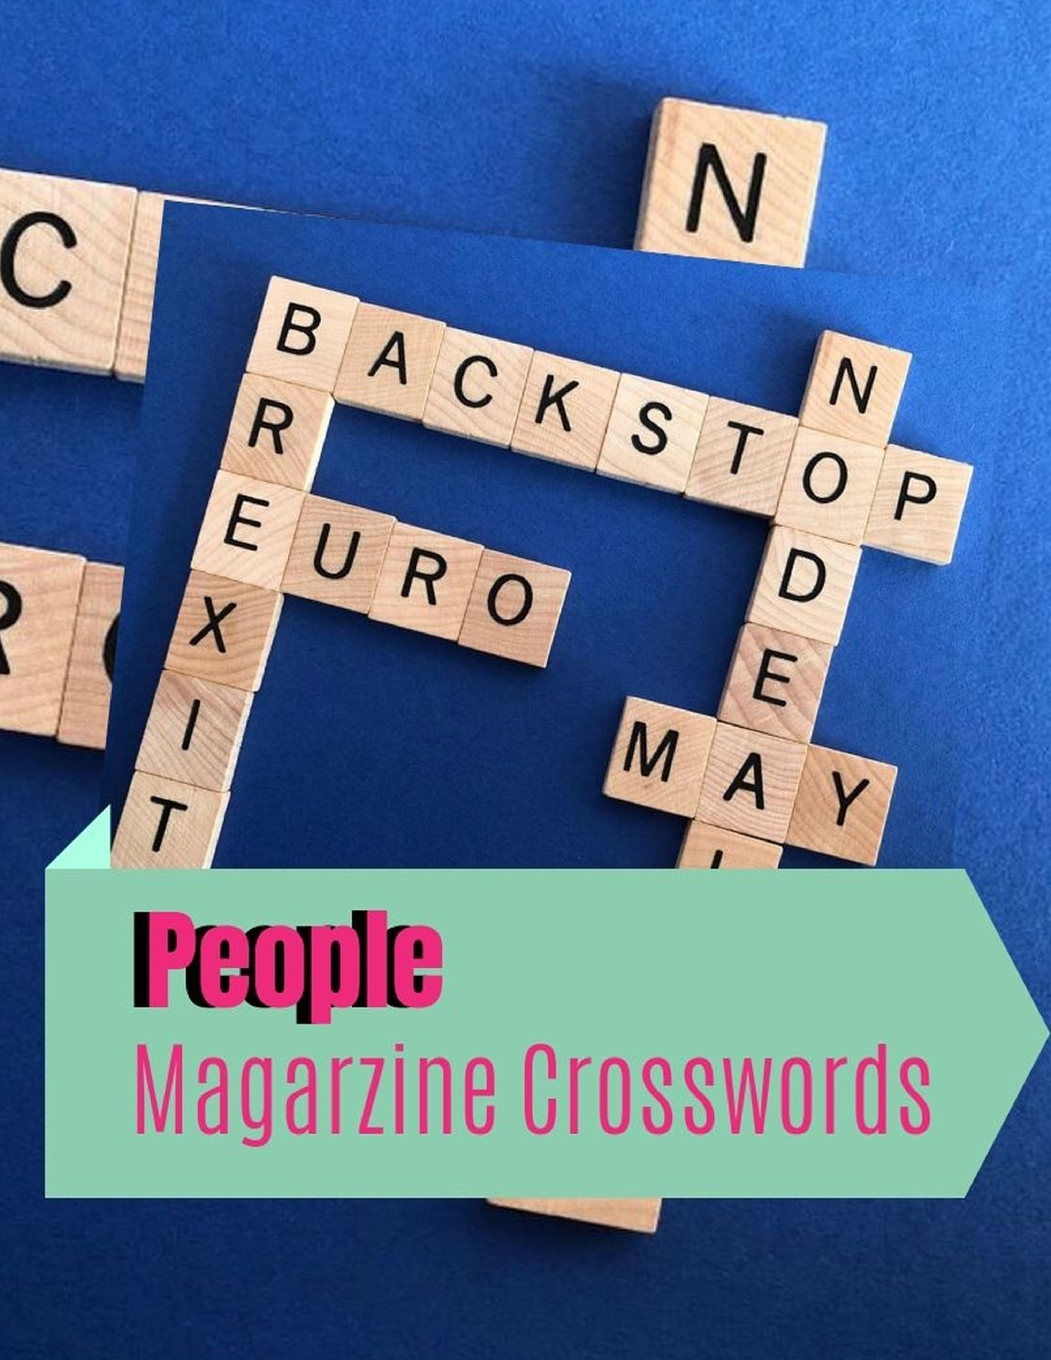 People Magarzine Crosswords : Fill In Crosswords Framework Puzzle Book, Word  Search And Crossword Puzzle Books, Find Puzzles For Relaxation, A Unique  Gift For Seniors, Adults, And Teens (Paperback) - Walmart.com -